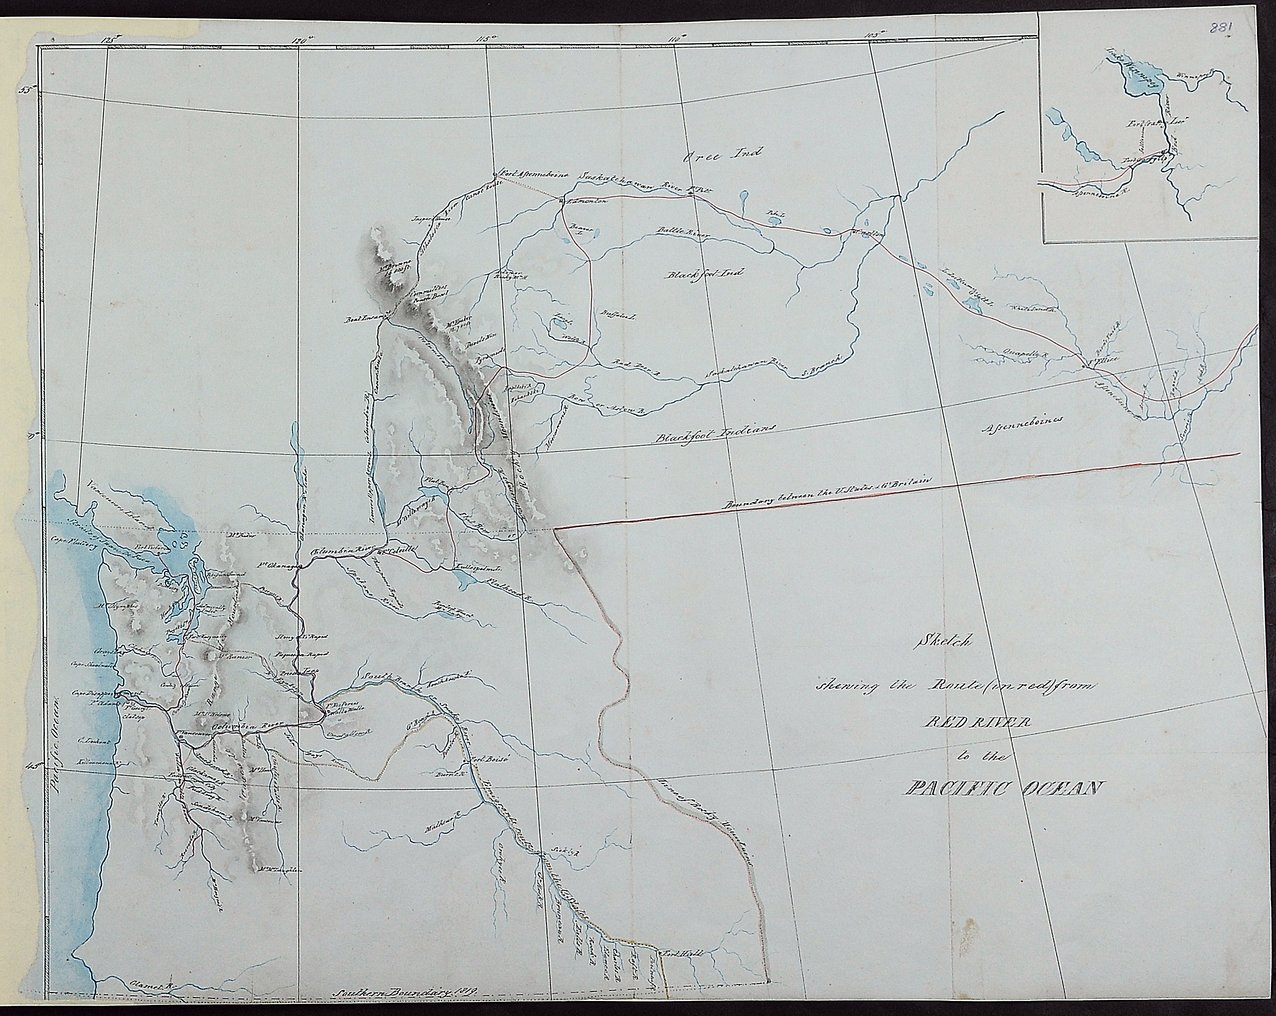 Sketch shewing the route (in red) from Red River to the Pacific Ocean.